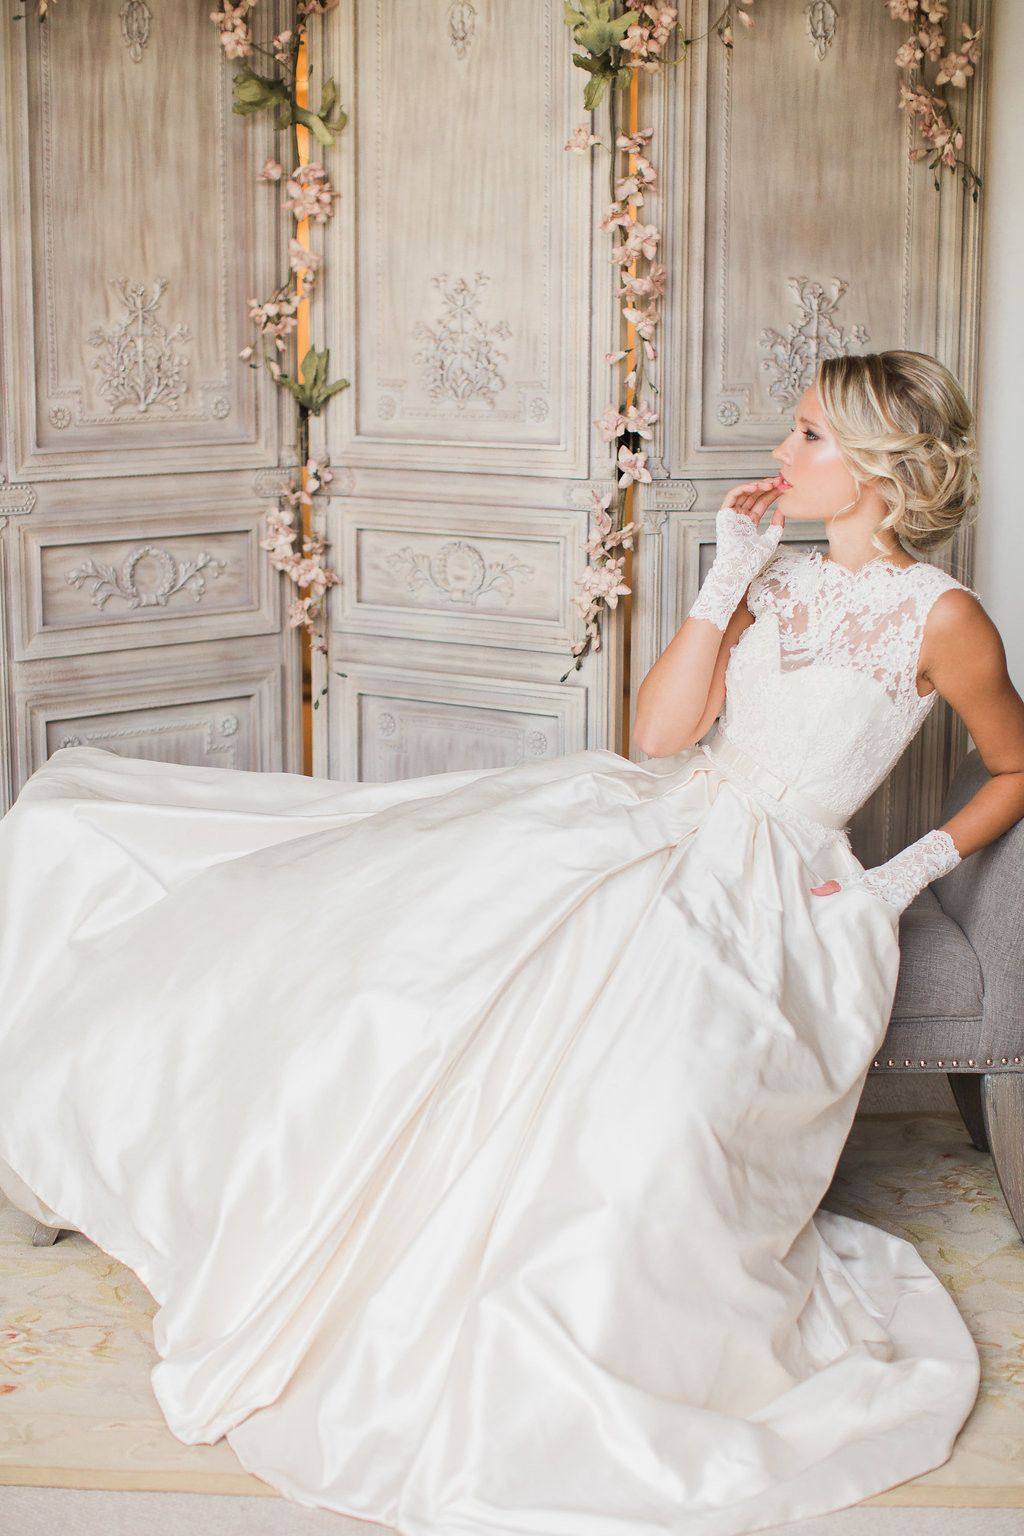 Joyce Young Design Studio - Offering collections of elegant wedding dresses designed in luxurious fabrics for discerning brides and most budgets. Bridebook.co.uk love their graceful designs.